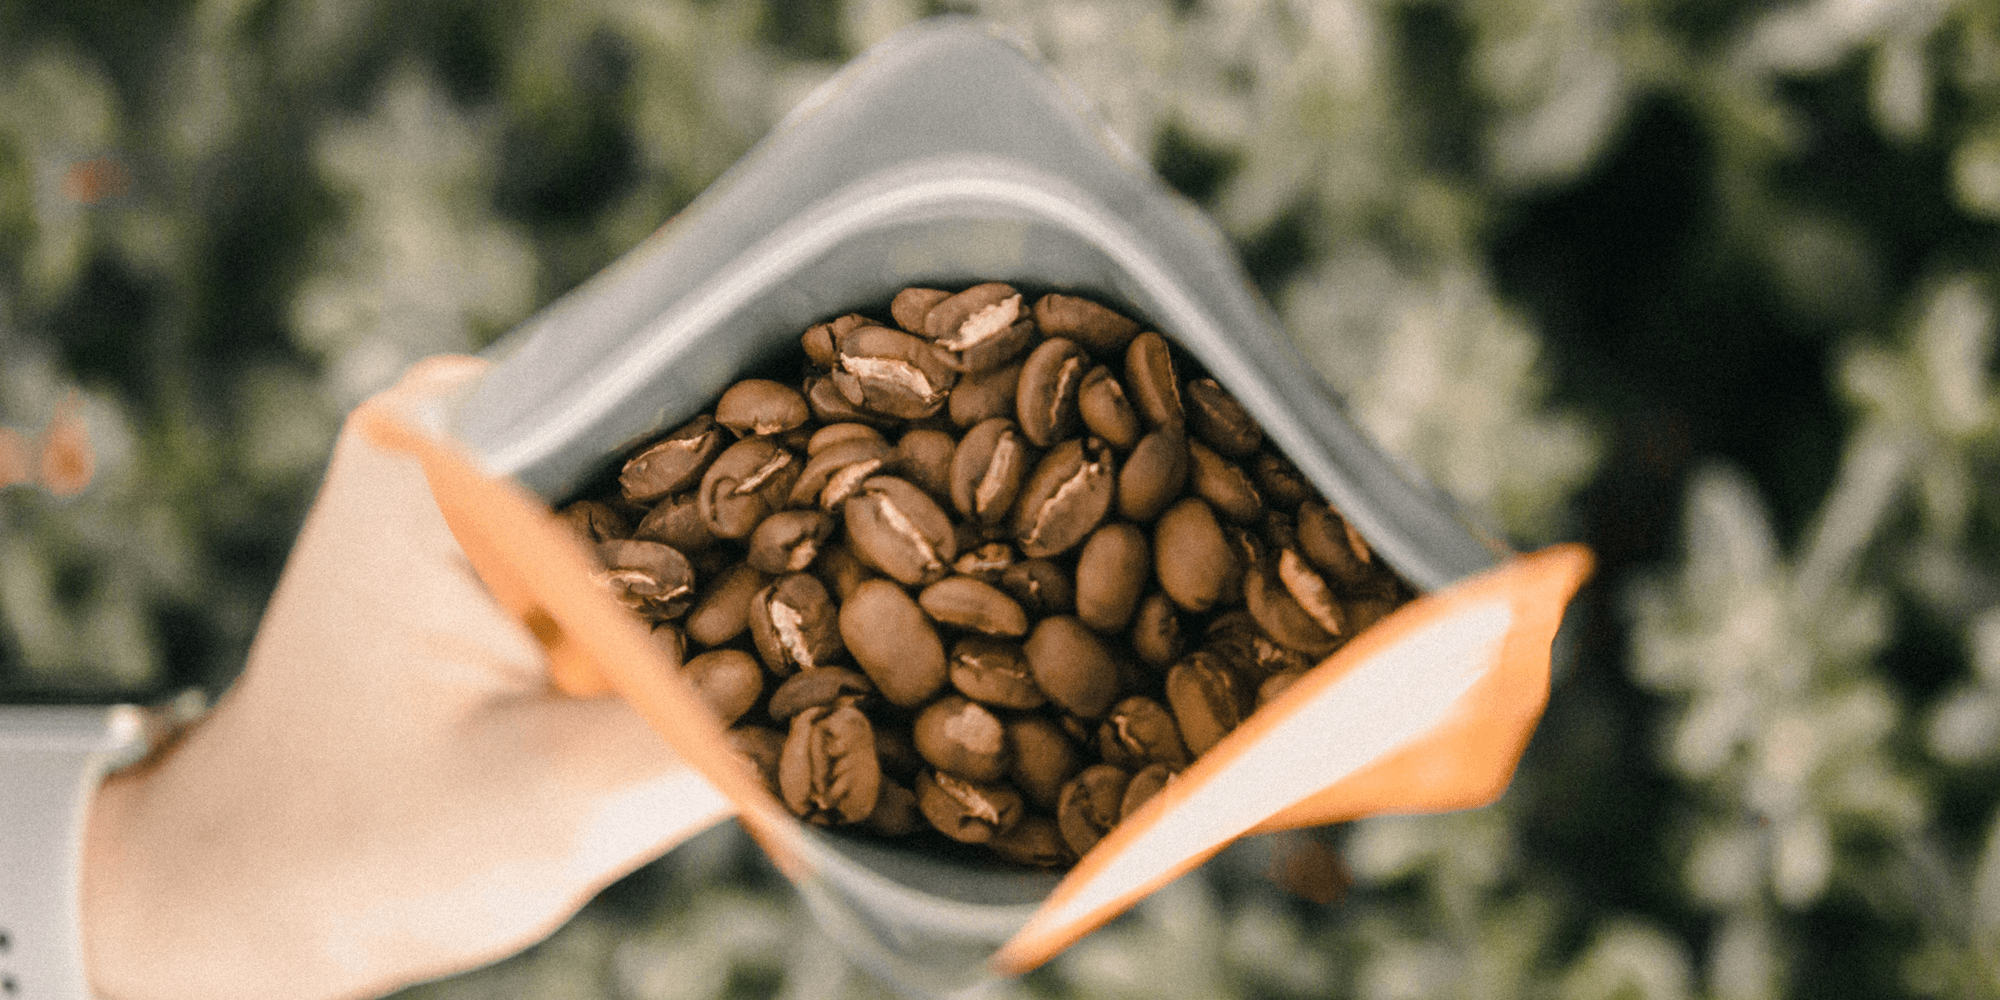 Storing coffee at home